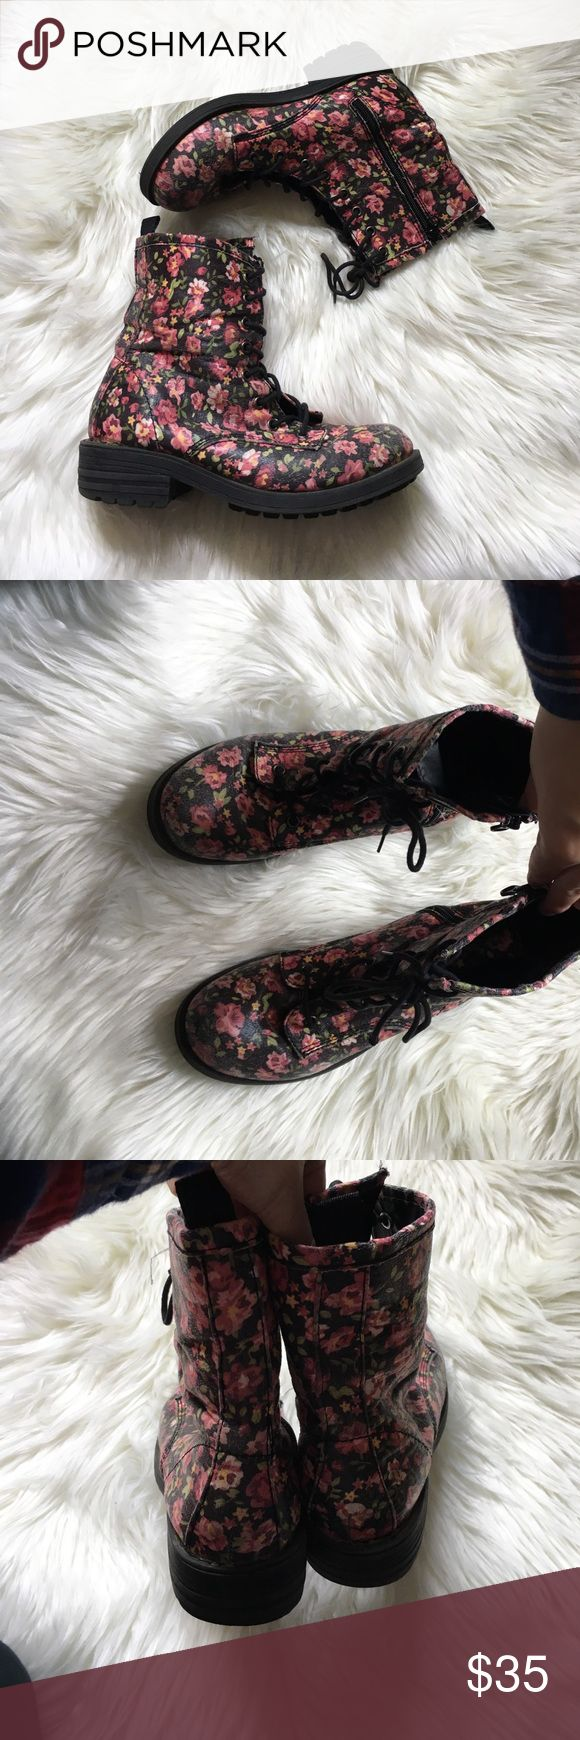 Steve Madden Floral Lace Up Combat Boots Excellent condition with light wear and tons of life left! NO TRADES PLEASE Steve Madden Shoes Combat & Moto Boots